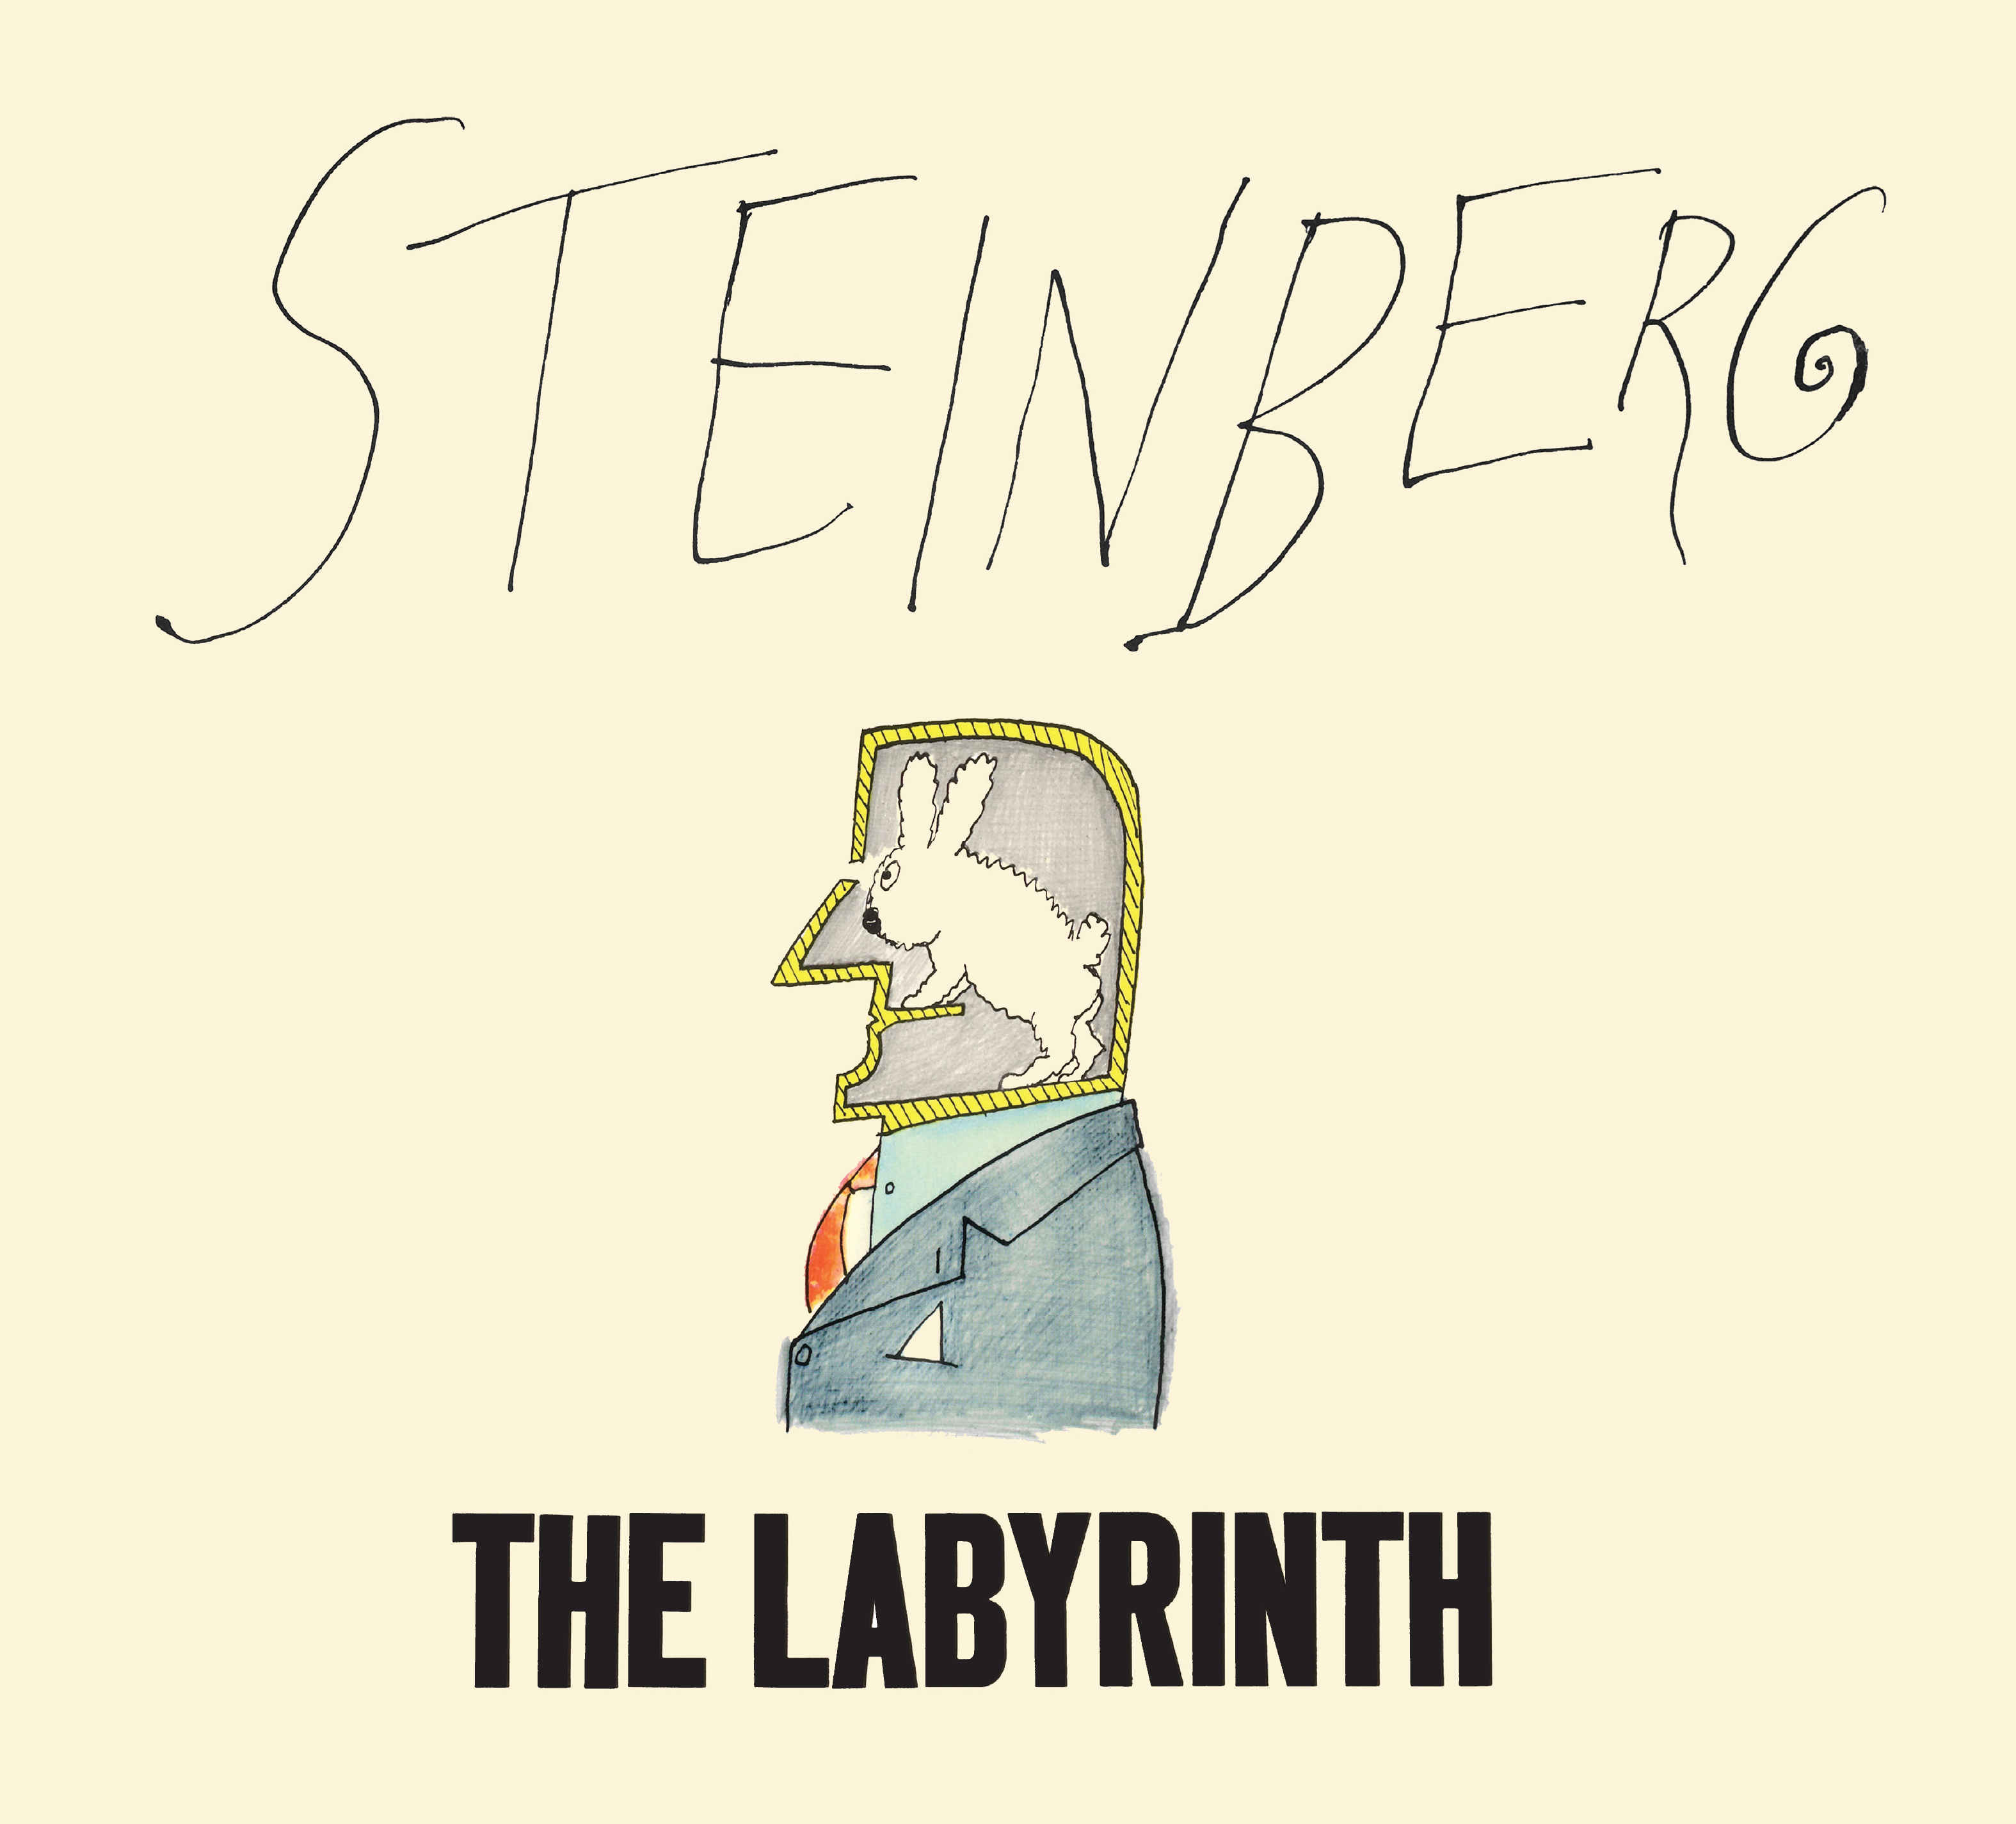 Book Launch: The Labyrinth by Saul Steinberg — Discussion w/ Liana Finck, Bill Kartalopoulos, Françoise Mouly, and Joel Smith